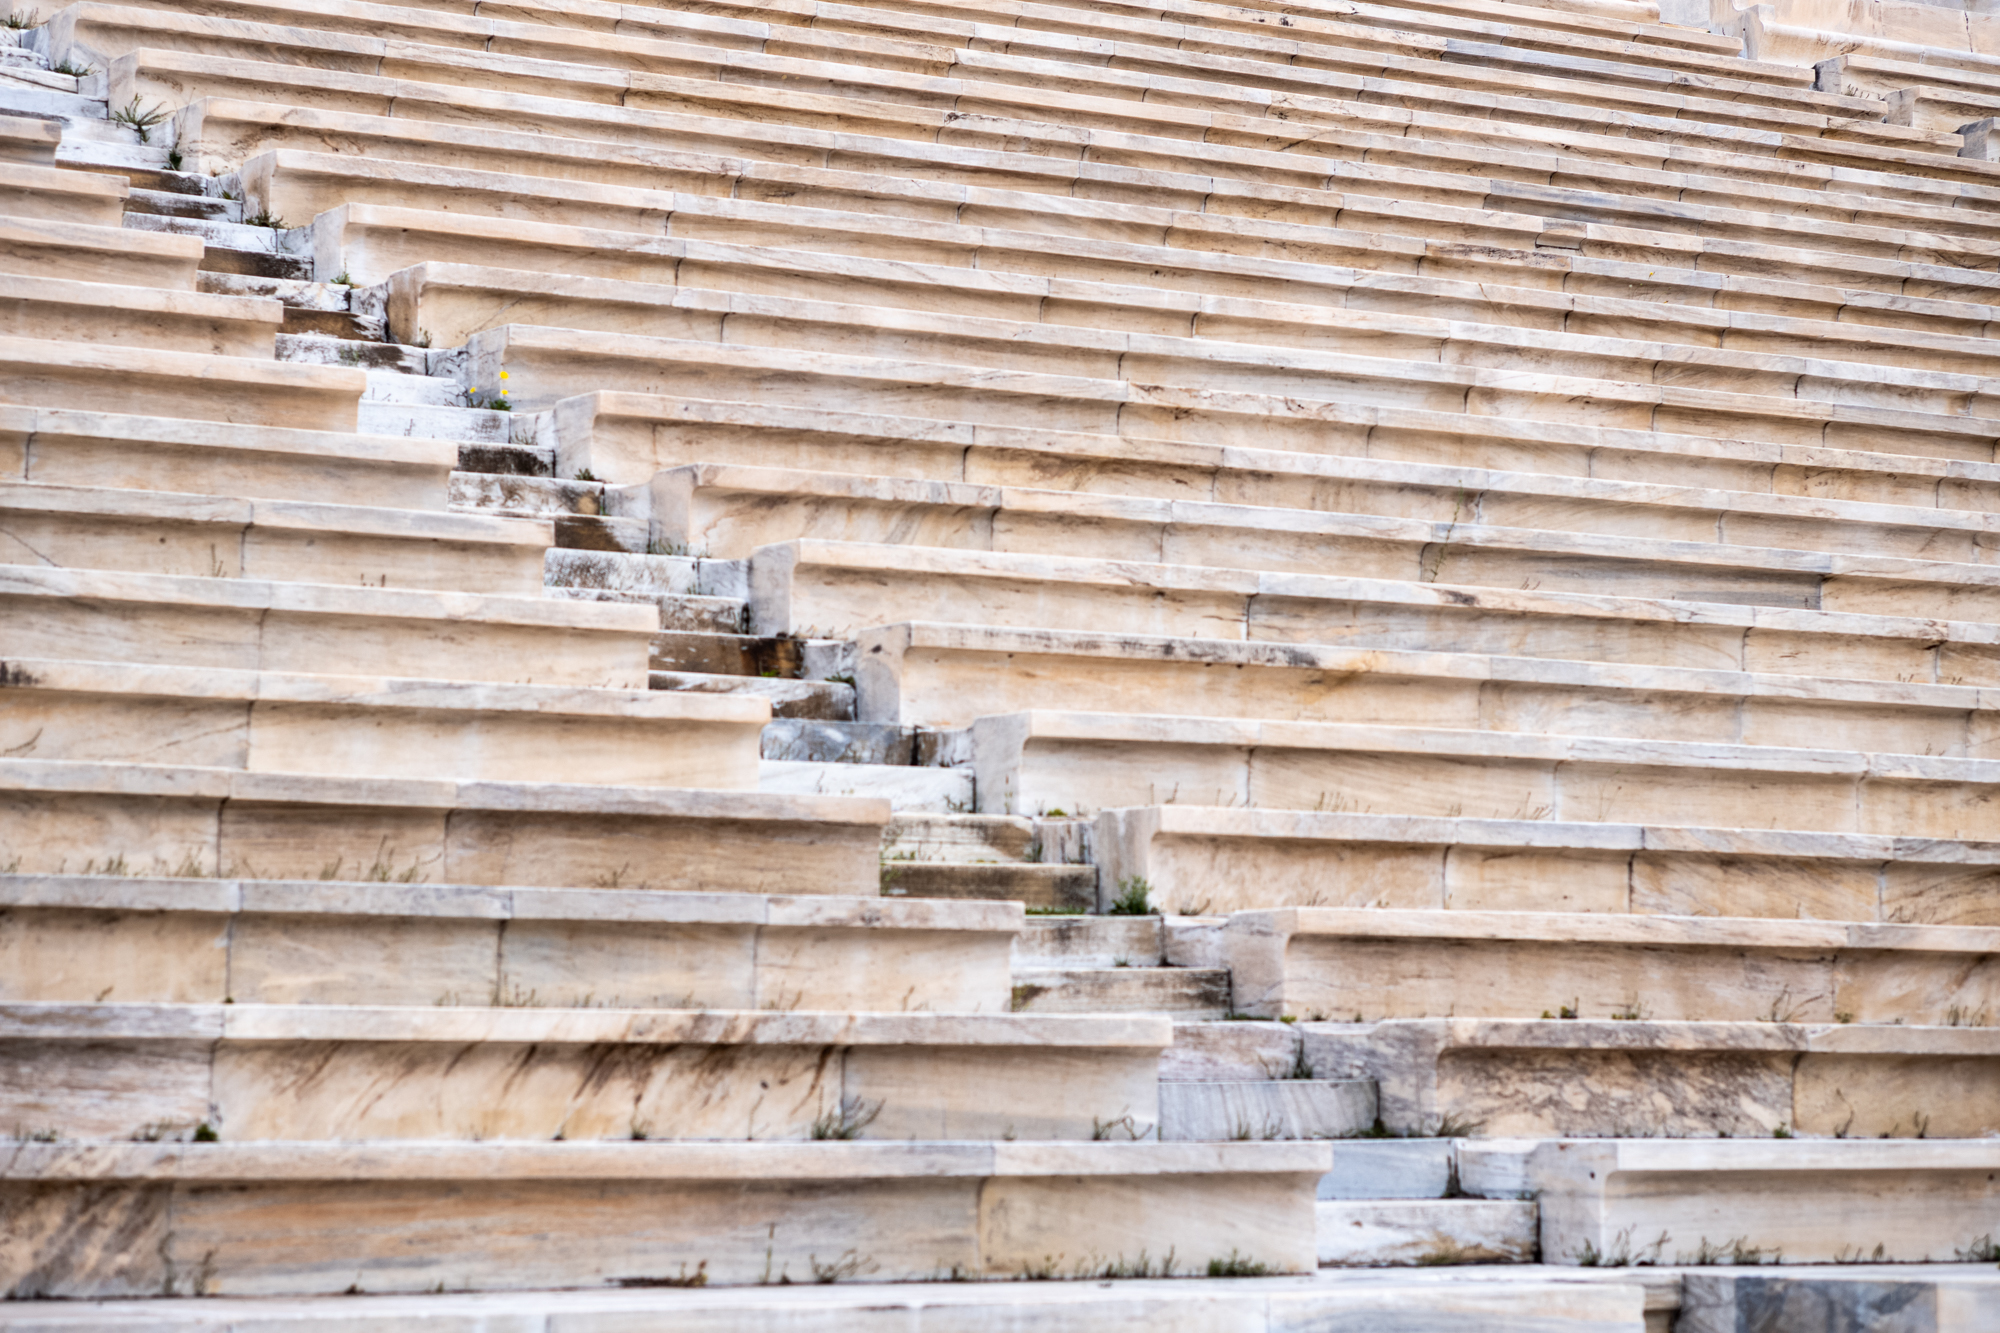 Steps and seats in the Stadium